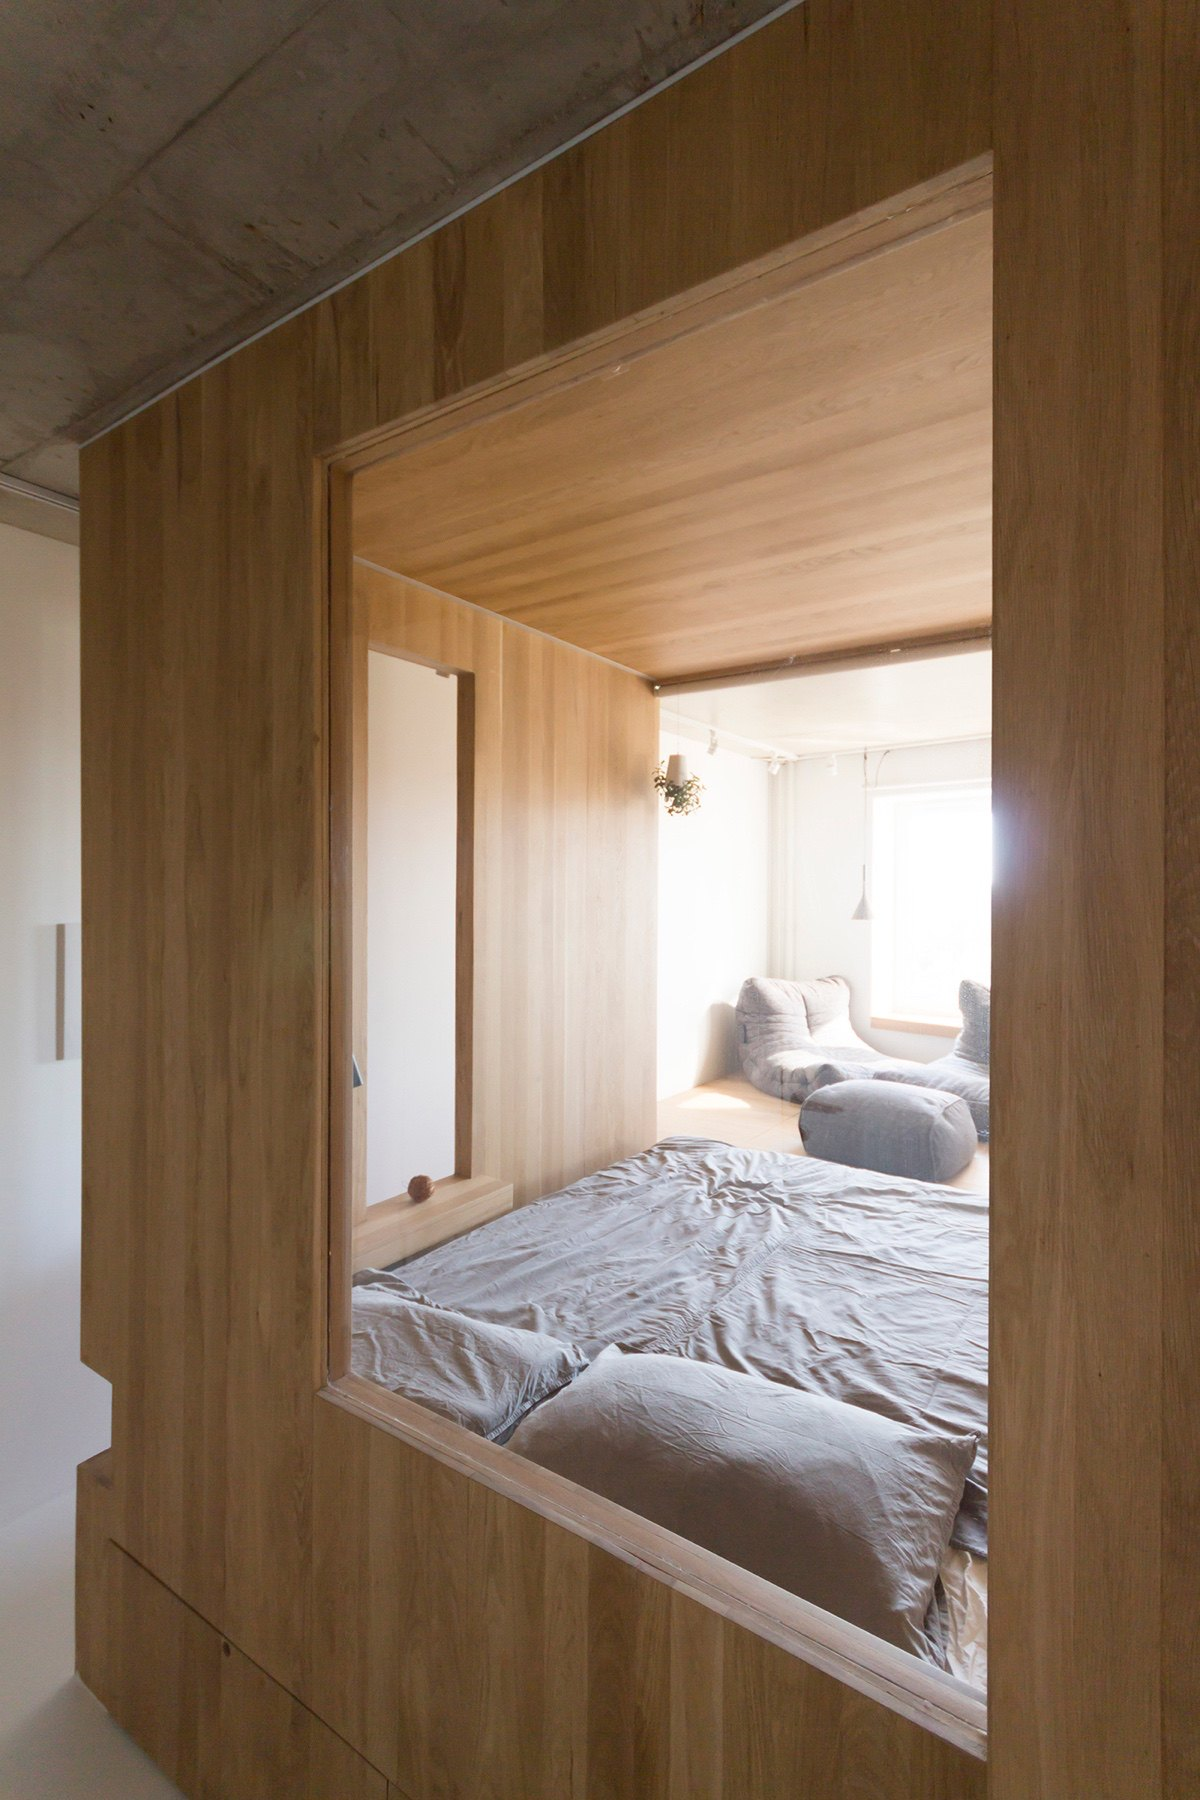 View Through Inner Bedroom Window Grey Bedding White And Wooden Walls - Super small studio apartment under 50 square meters includes floor plan